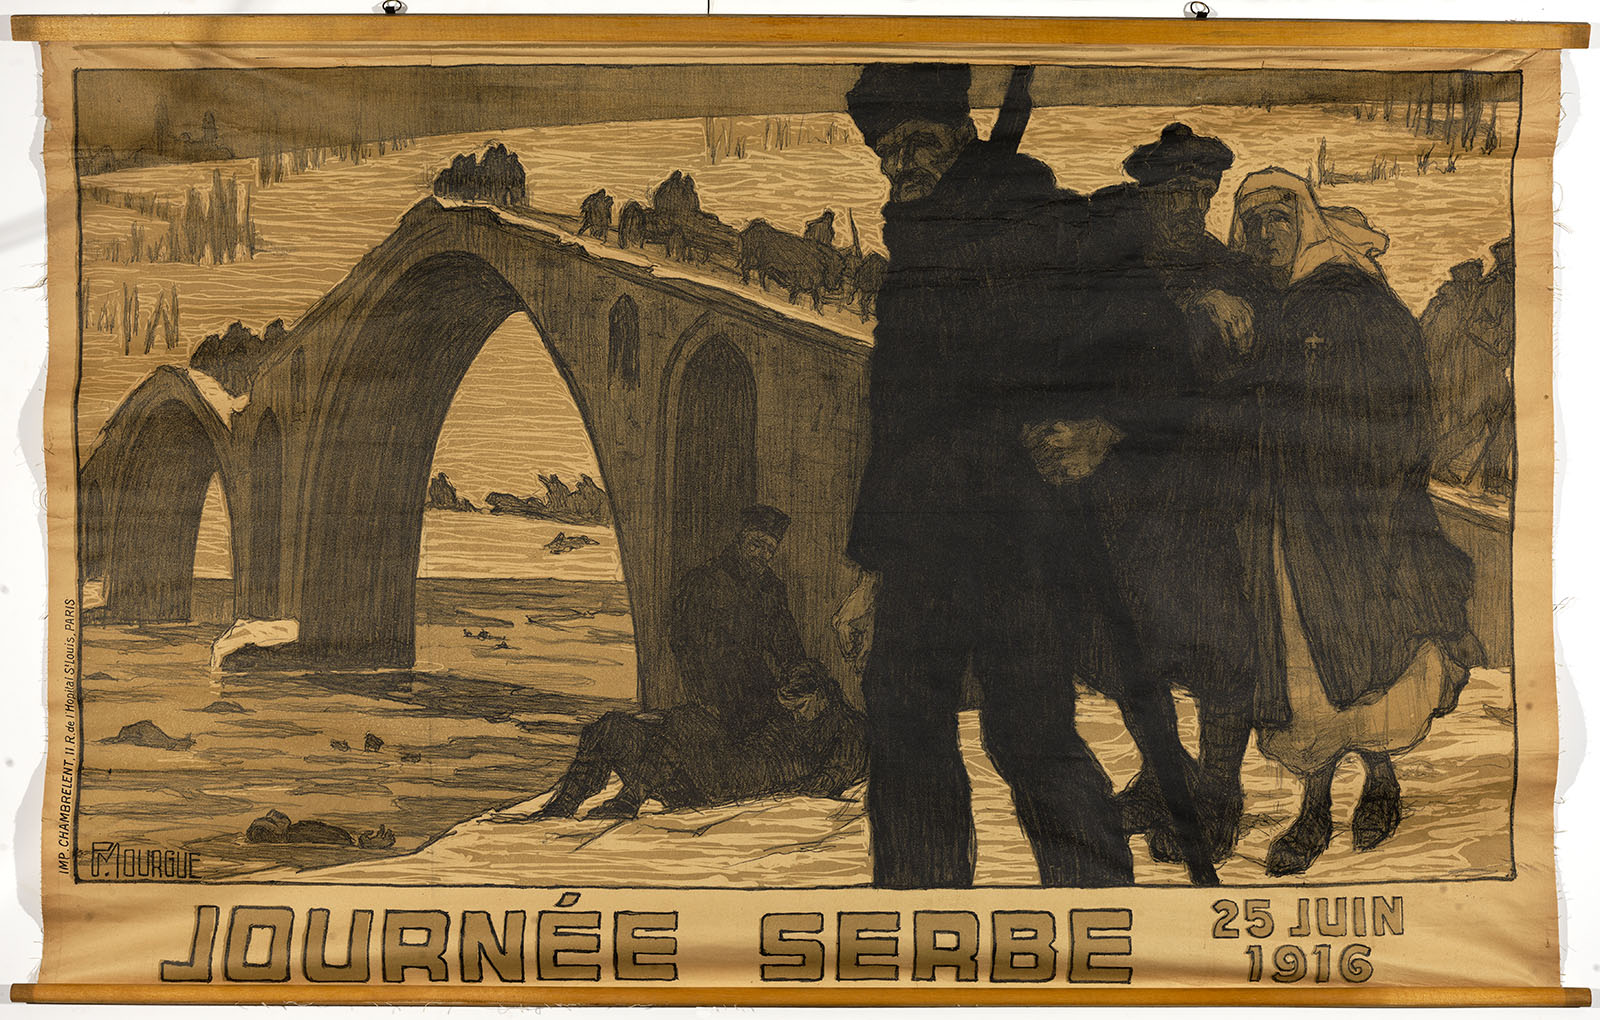 P. Mourgue, Journée Serbe, 25 Juin 1916 (Paris, 1916). Color lithograph. Gift of Mrs. Franklin S. Edmonds.